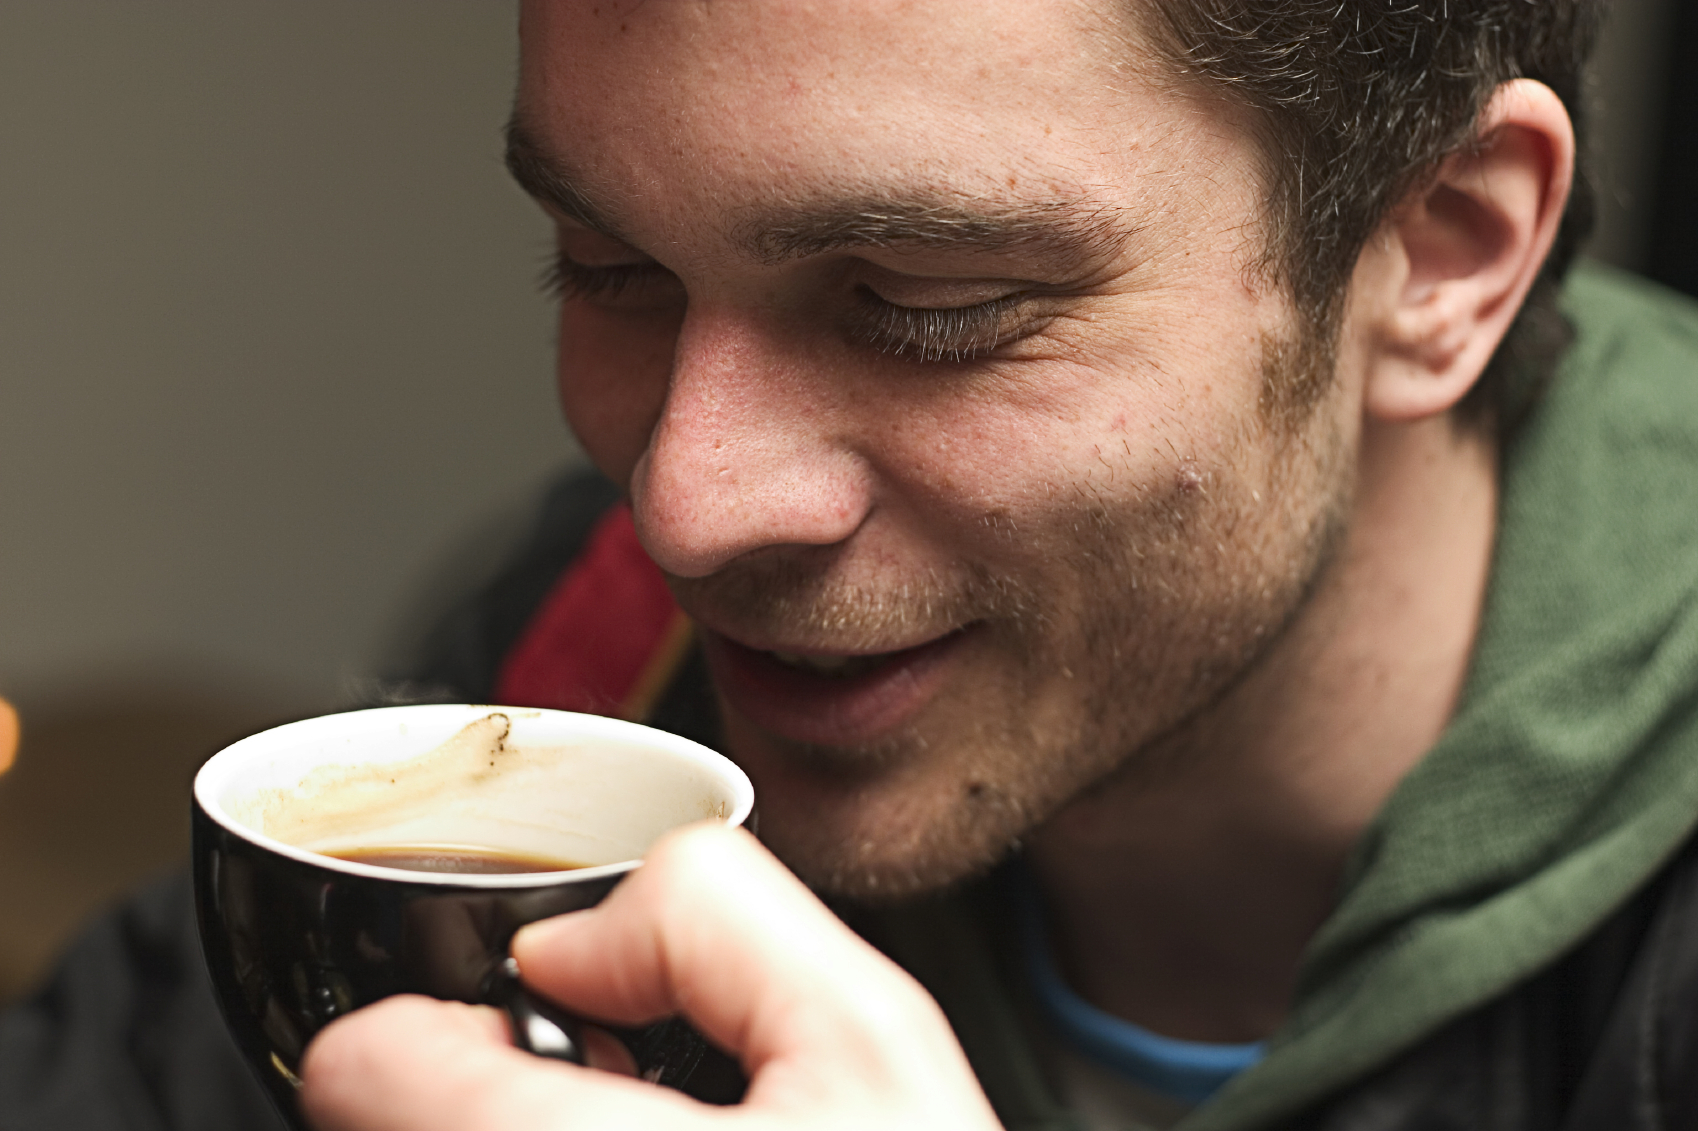 Why you shouldn't drink coffee when you're drunk